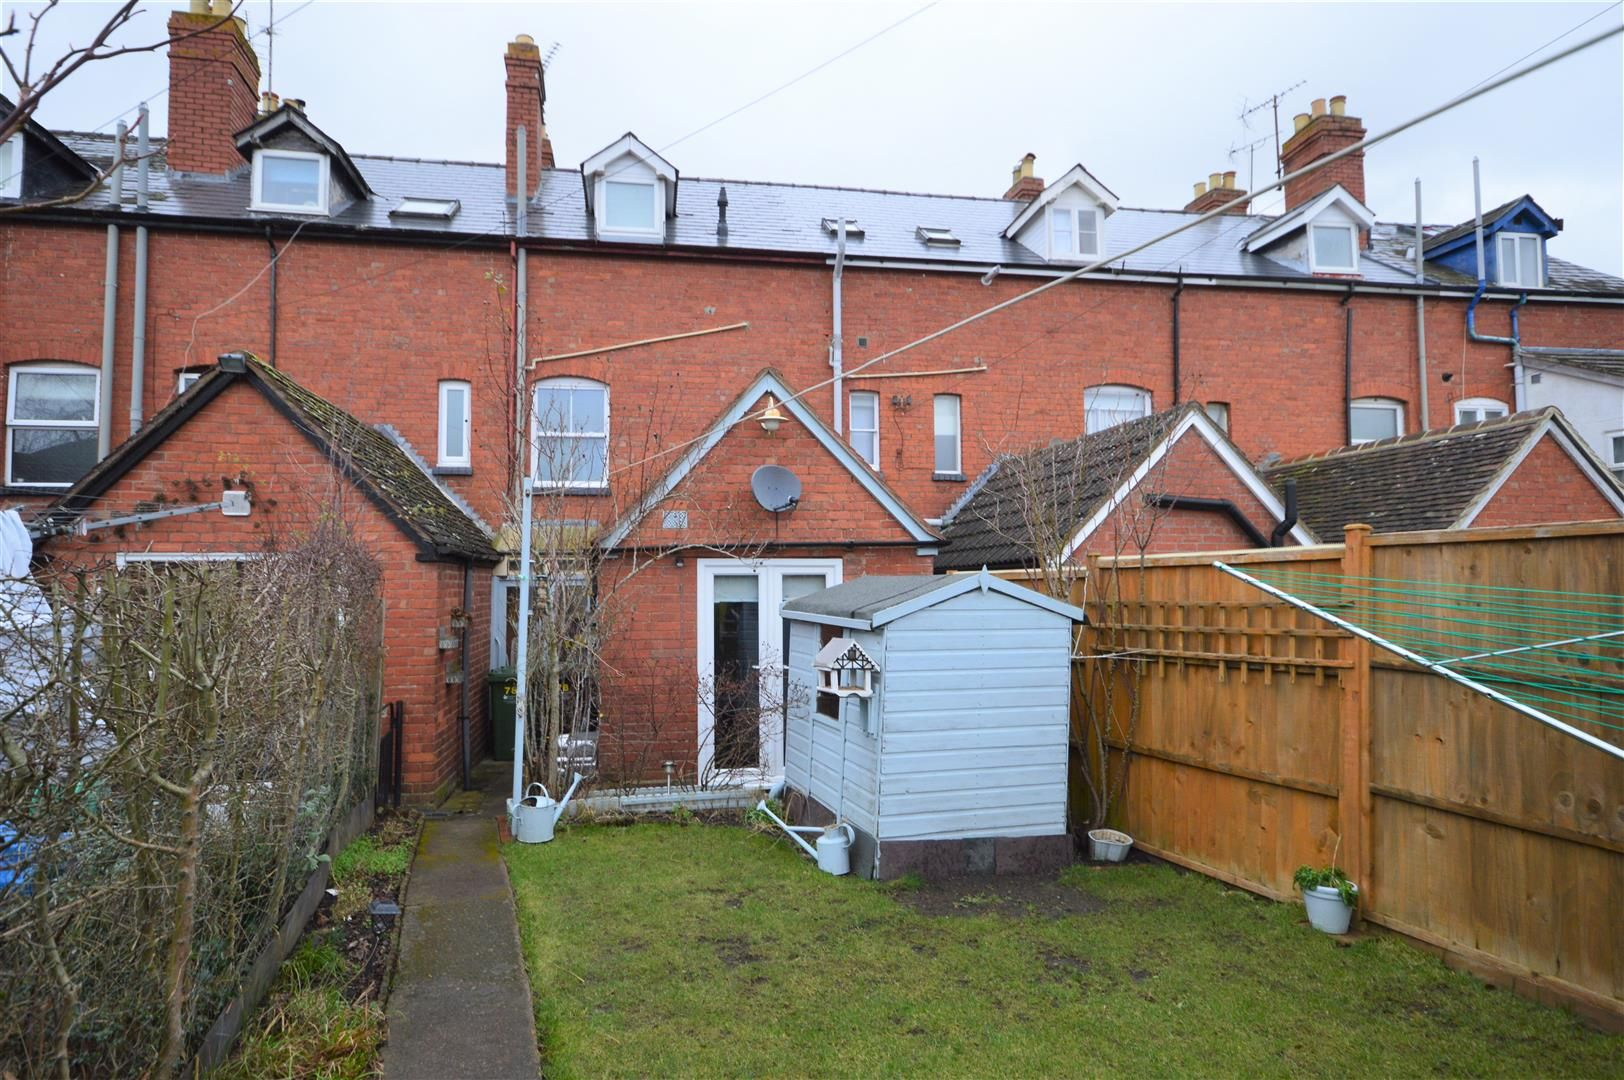 3 bed end of terrace for sale in Leominster 20